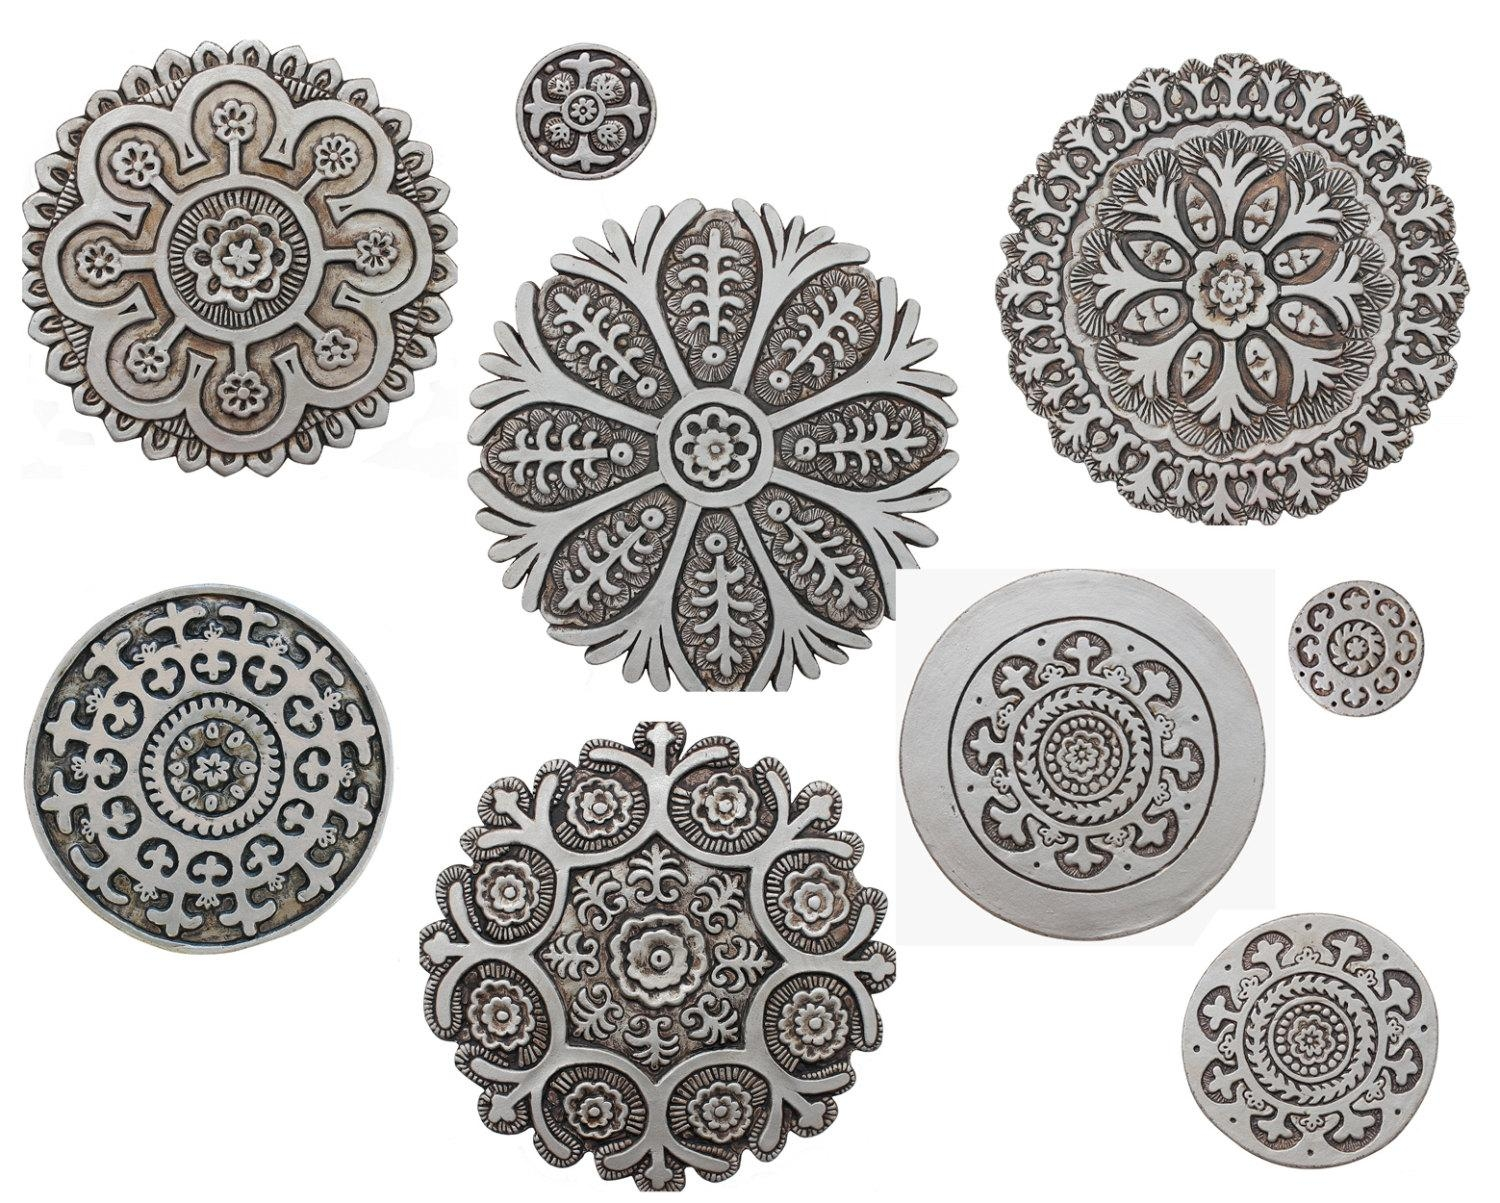 9 Circle Wall Art With Suzani Designs Painted In Aged Silver For Ceramic Tile Wall Art (Image 3 of 20)